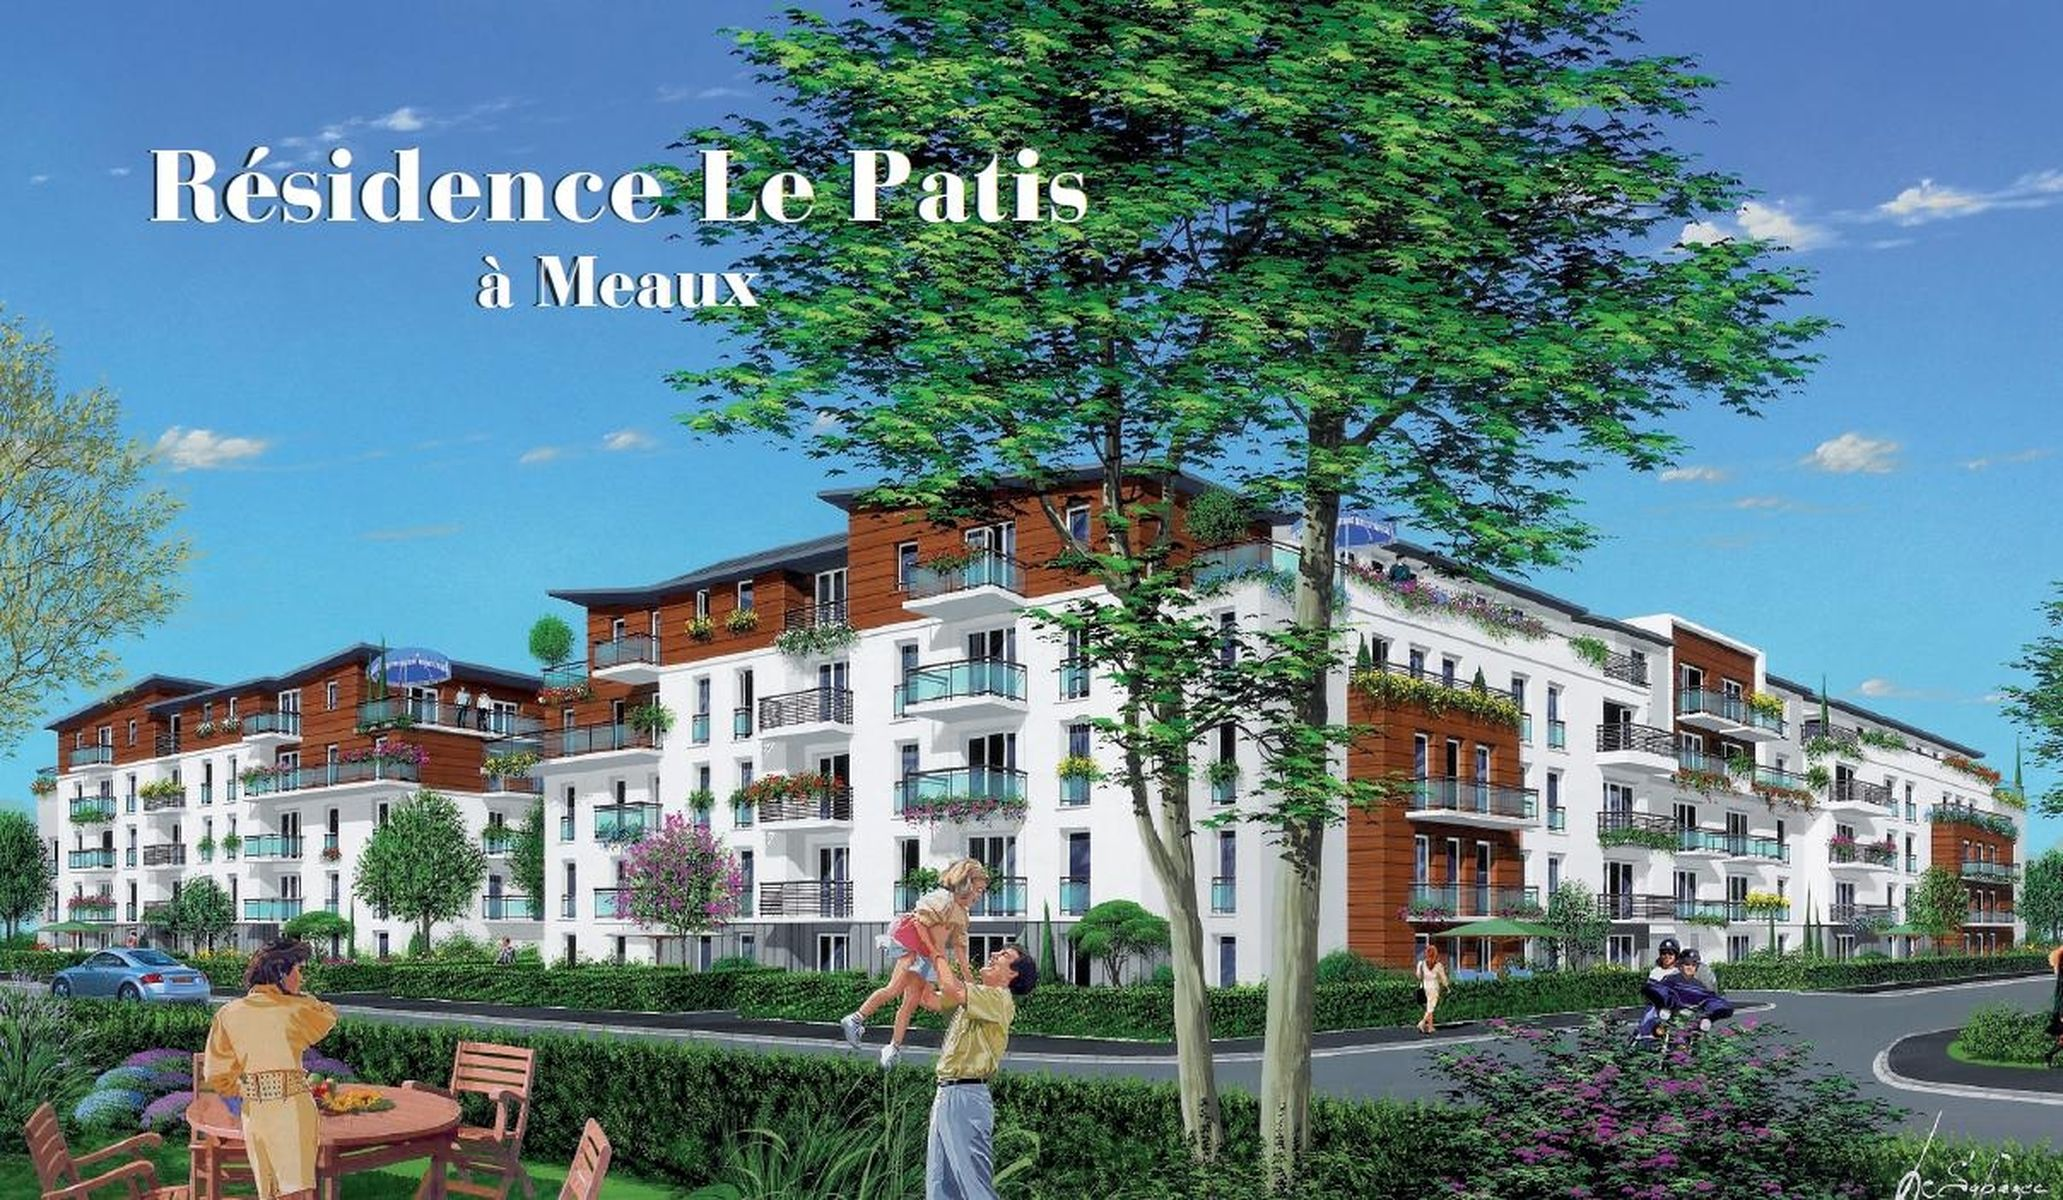 RESIDENCE LE PATIS